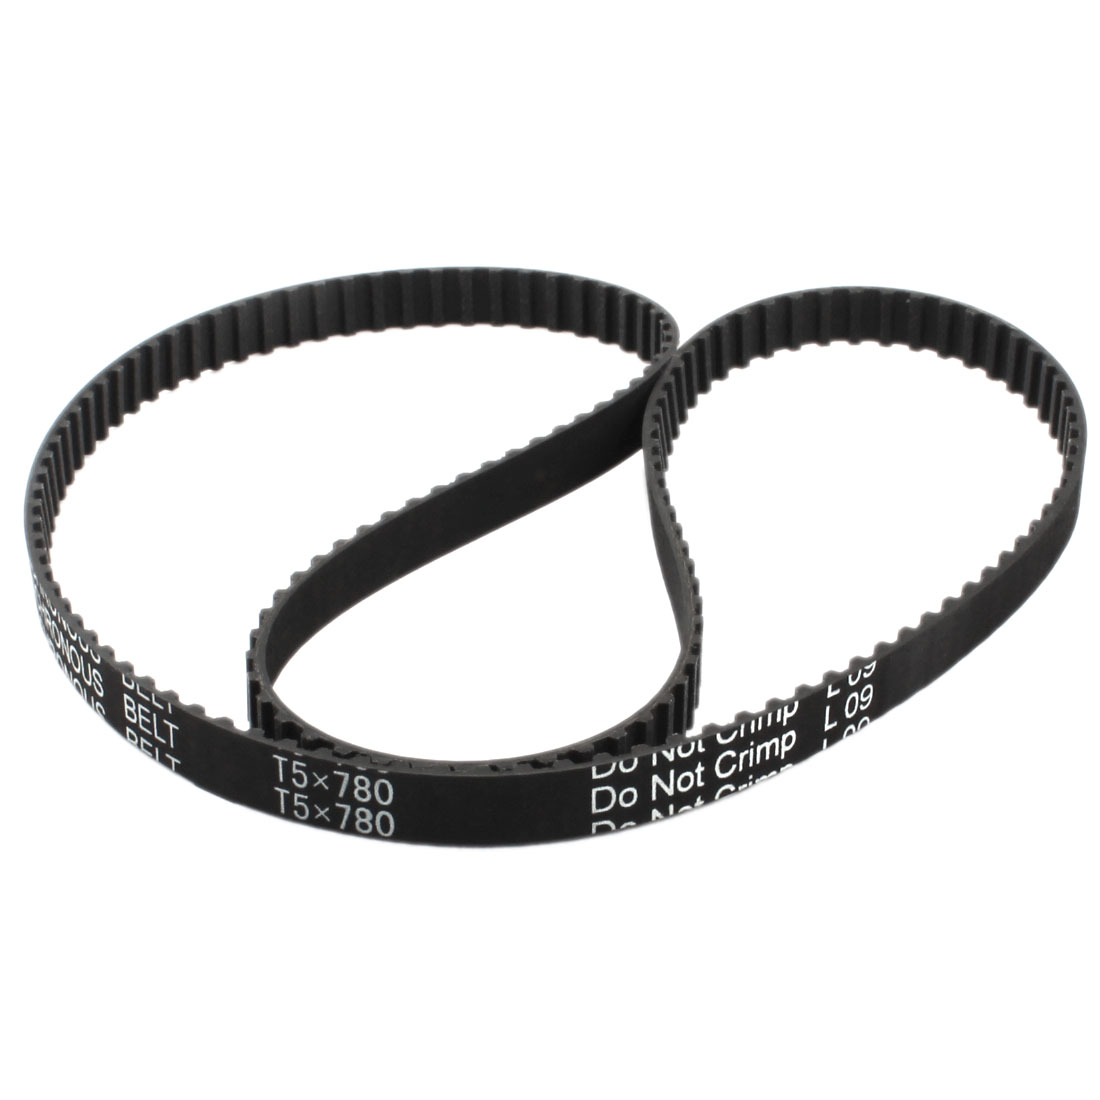 T5x780 156-Tooth 10mm Width Single Side Black Rubber Groove Industrial CNC Machine 3D Printer Synchronous Timing Belt 780mm Girth